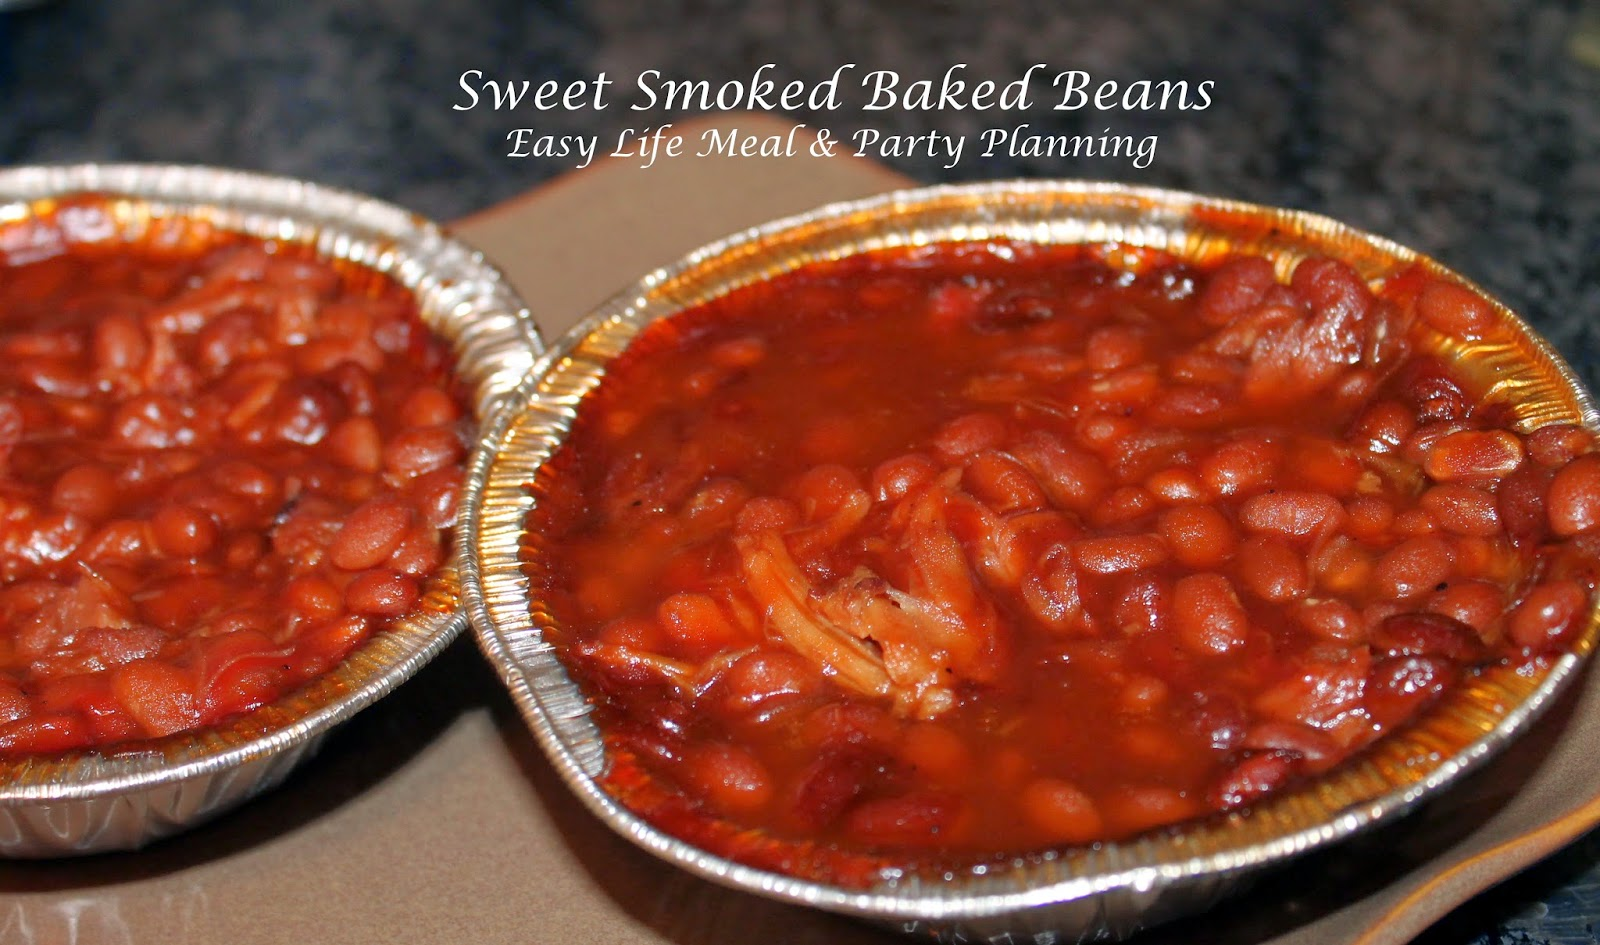 Smoked Sweet Baked Beans - Easy Life Meal & Party Planning - Brown sugar along with chunks of homemade smoked pork and the woody smoke flavor is a winning combination